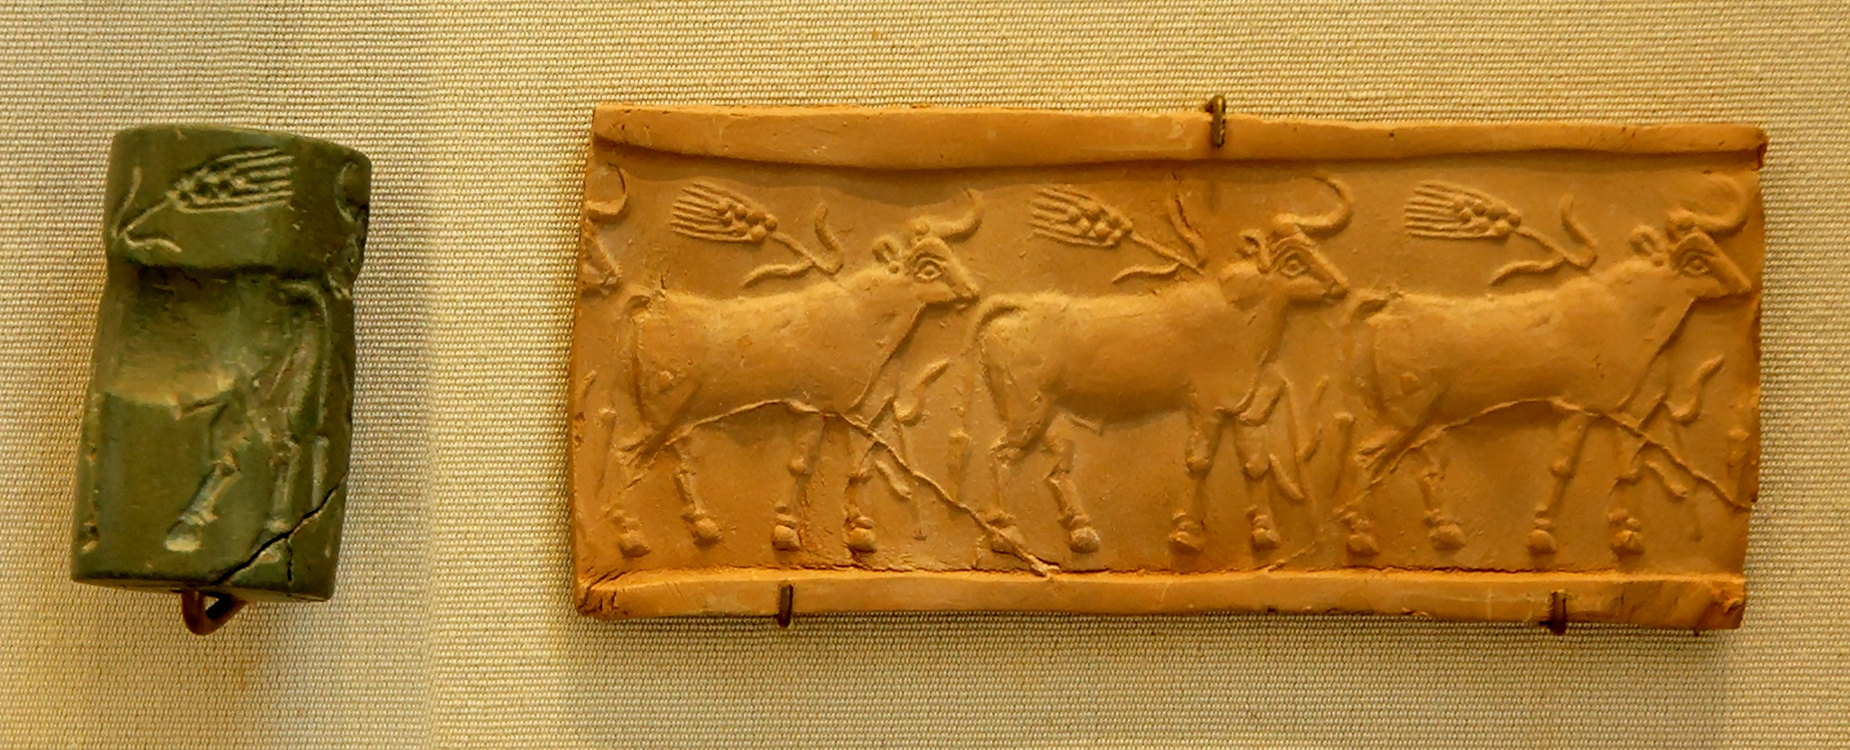 Cylinder Seal, Louvre